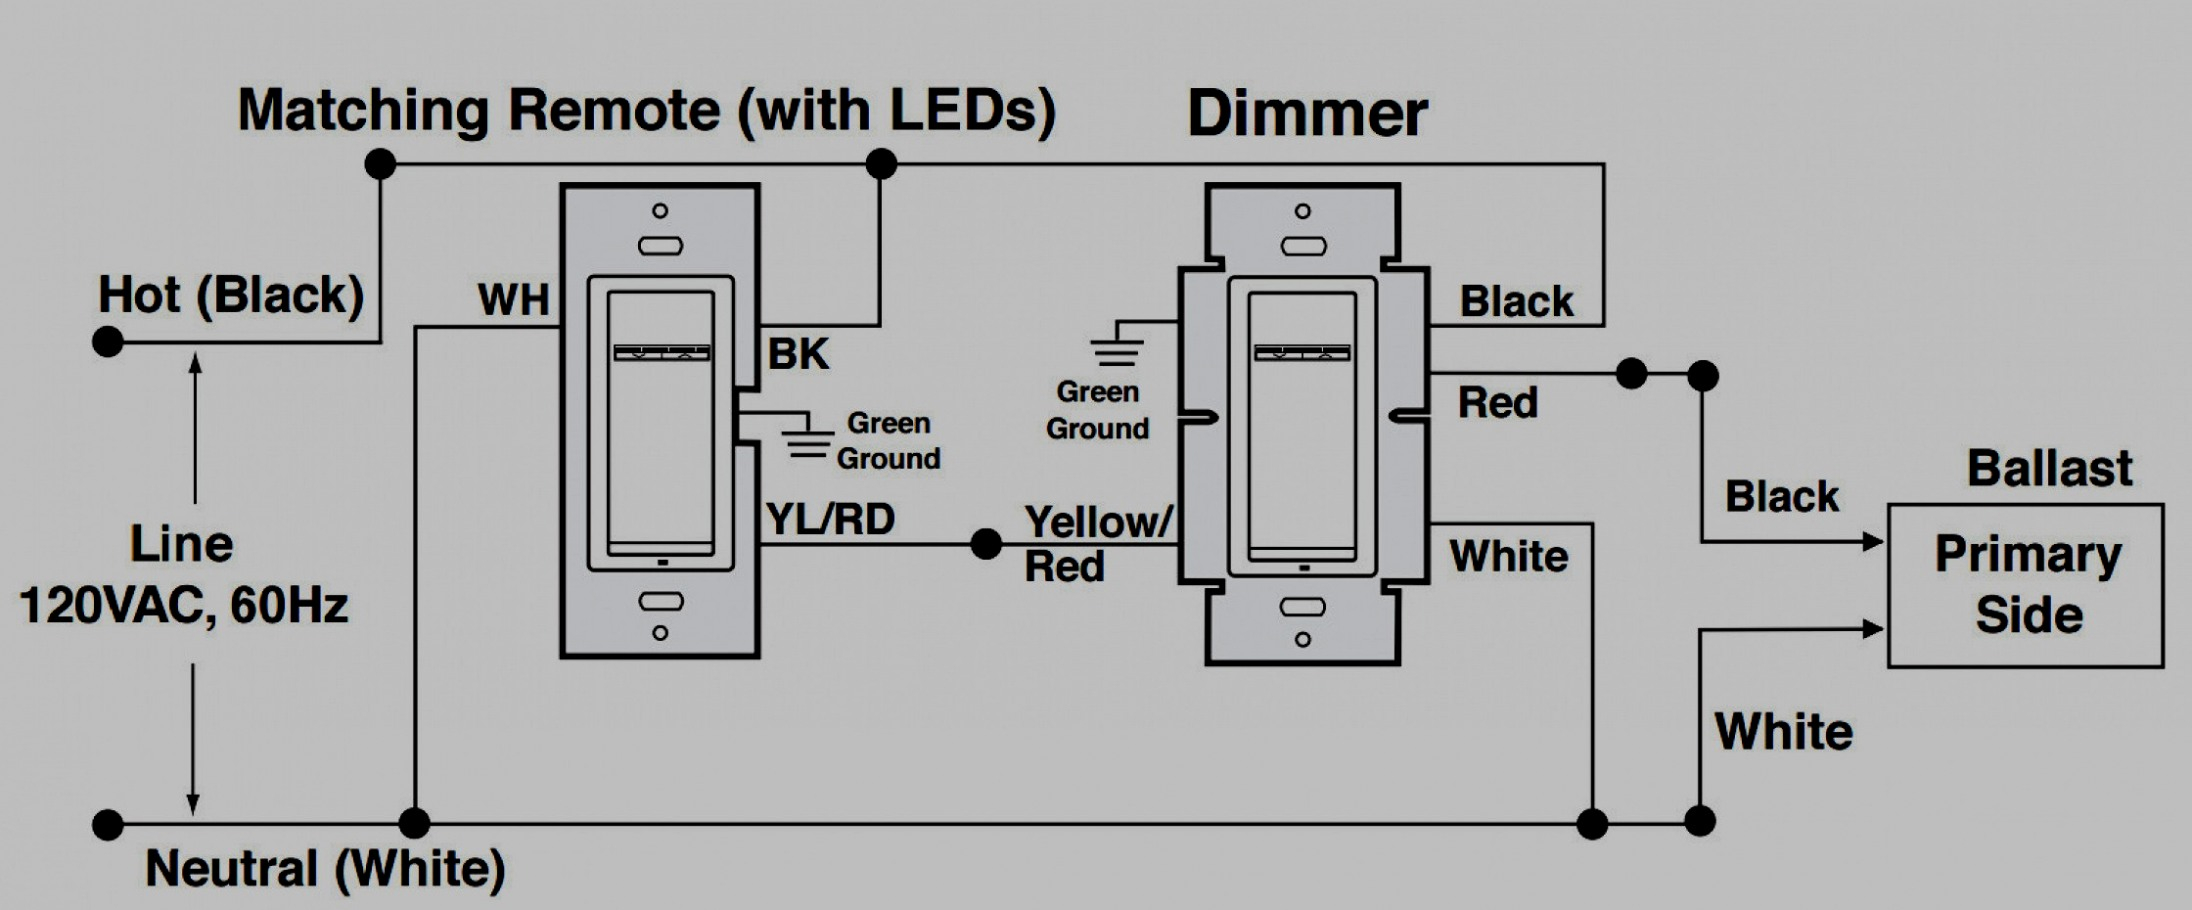 Lutron Wire Diagram | Schematic Diagram - 3 Way Dimmer Switch Wiring Diagram